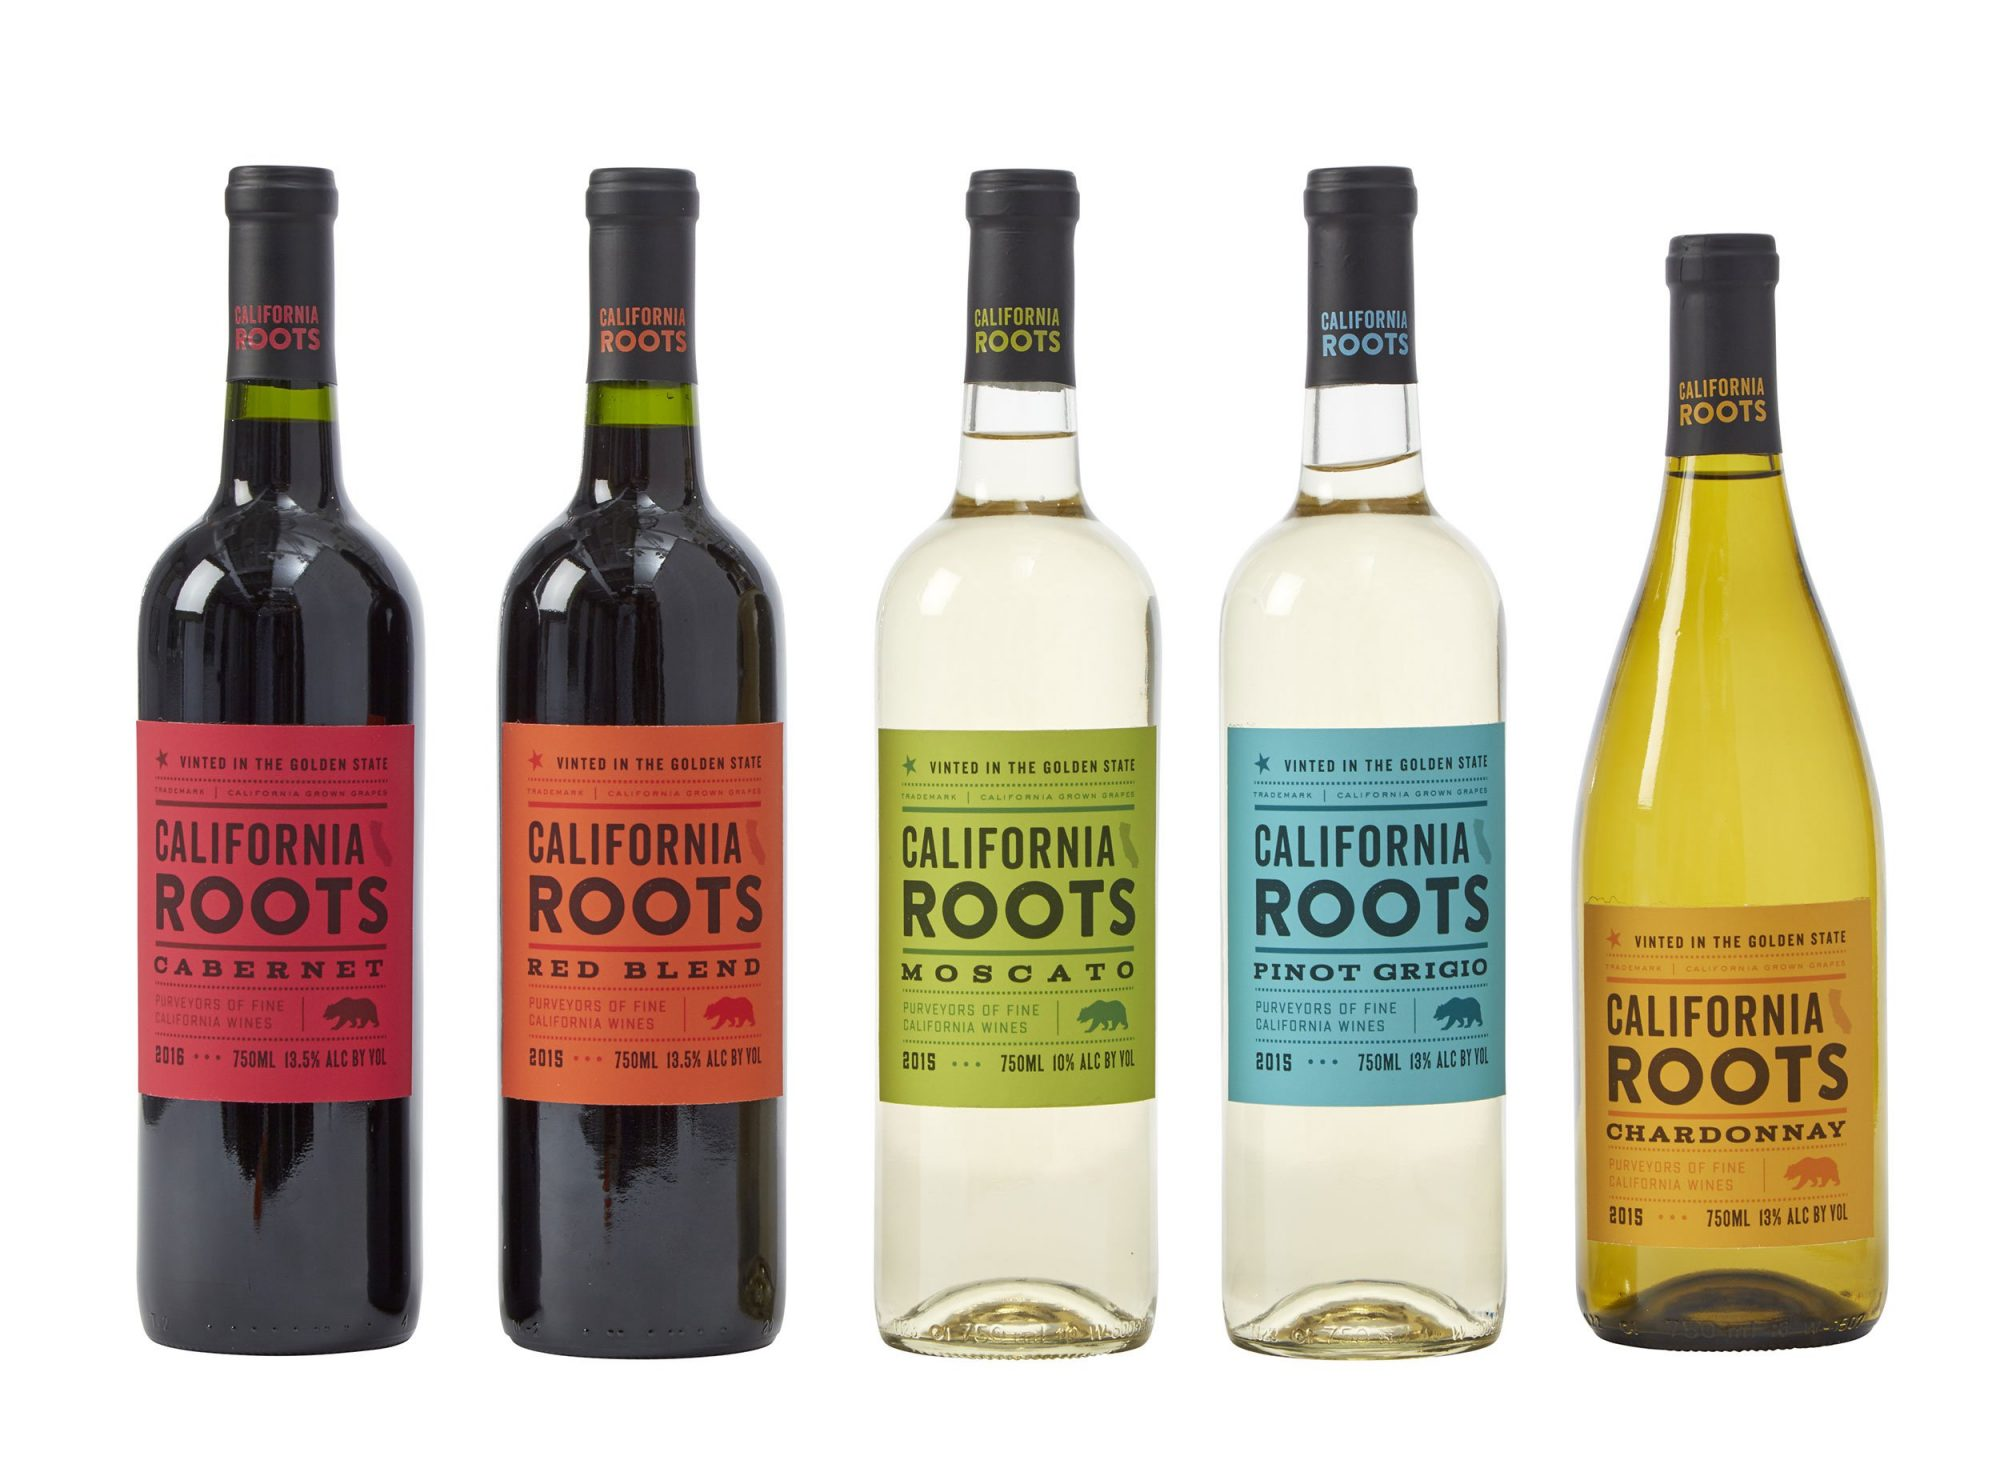 Target Introduces Line of $5 Wines